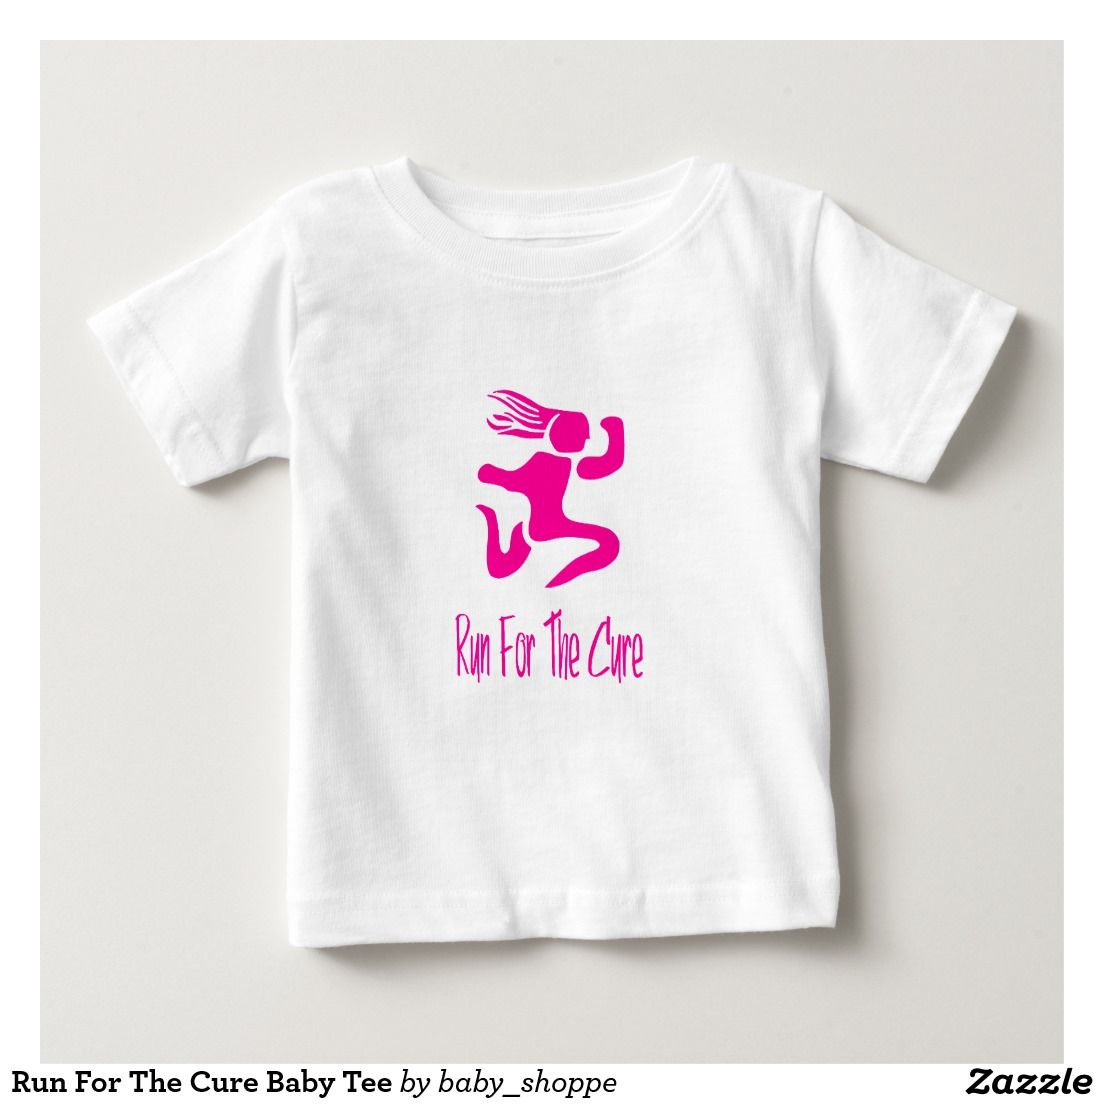 Run For The Cure Baby Tee